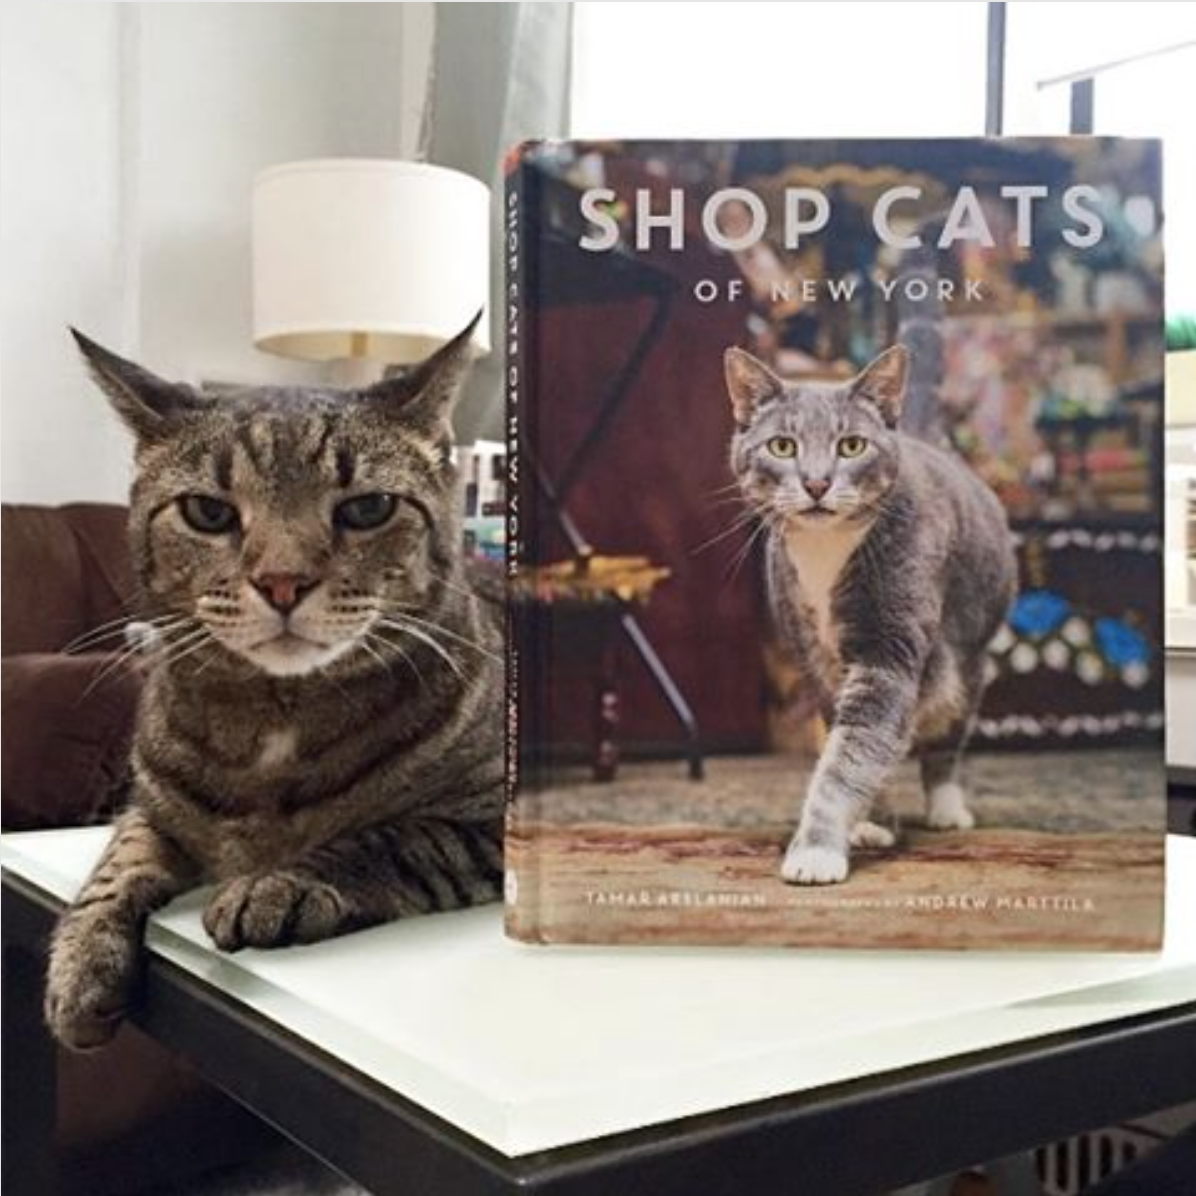 shop-cats-of-new-york-kippie-cat